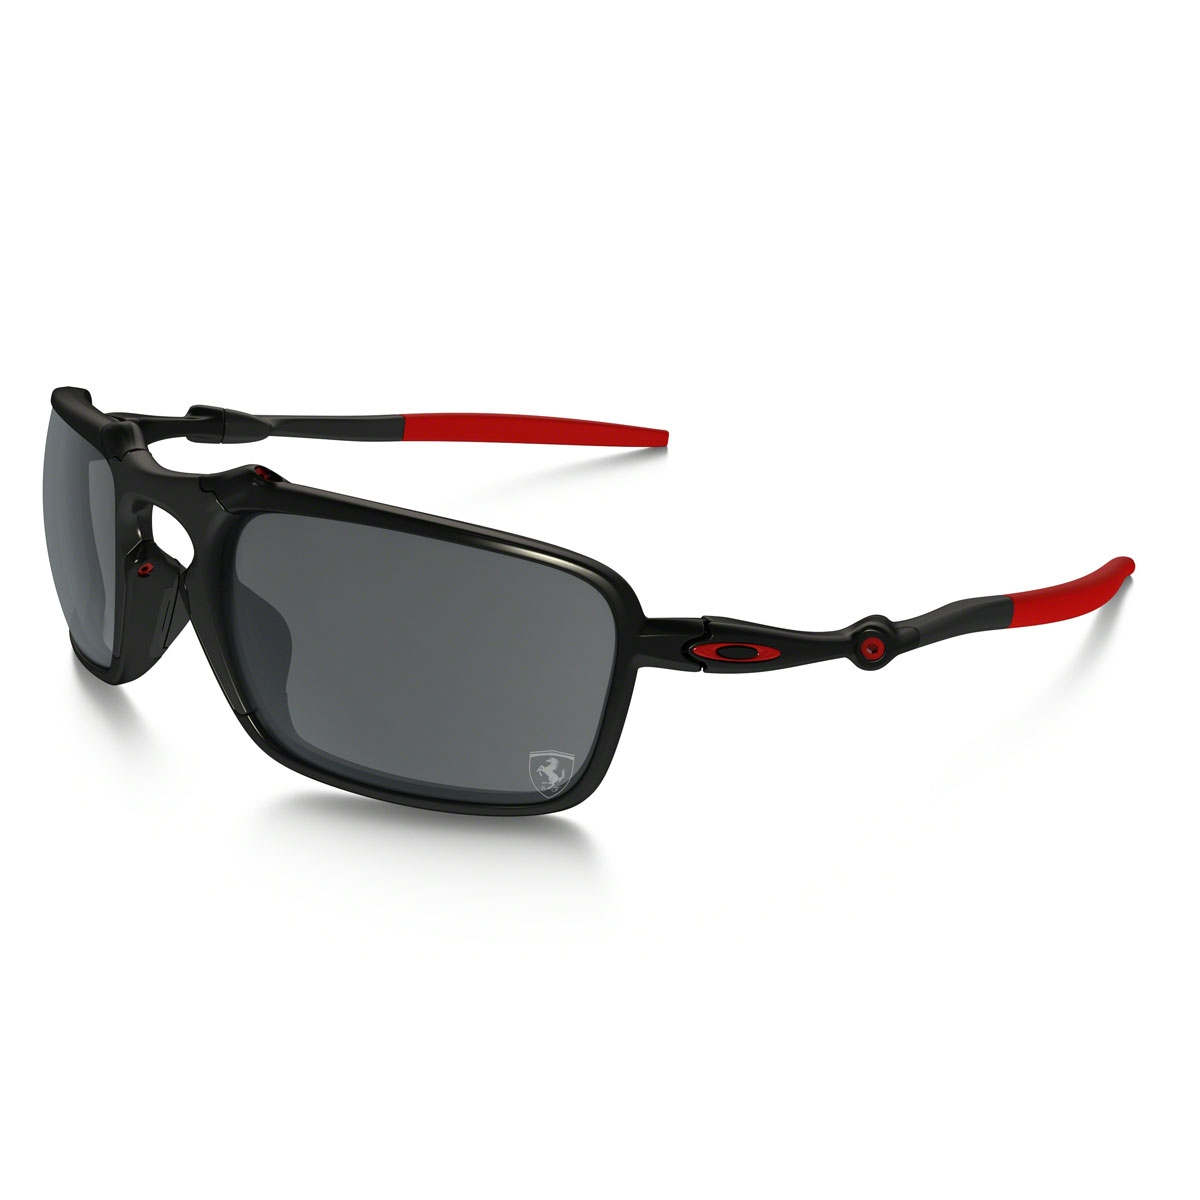 2397f25654 Oakley Scuderia Ferrari Collection Polarized Carbon Blade Sunglasses ...